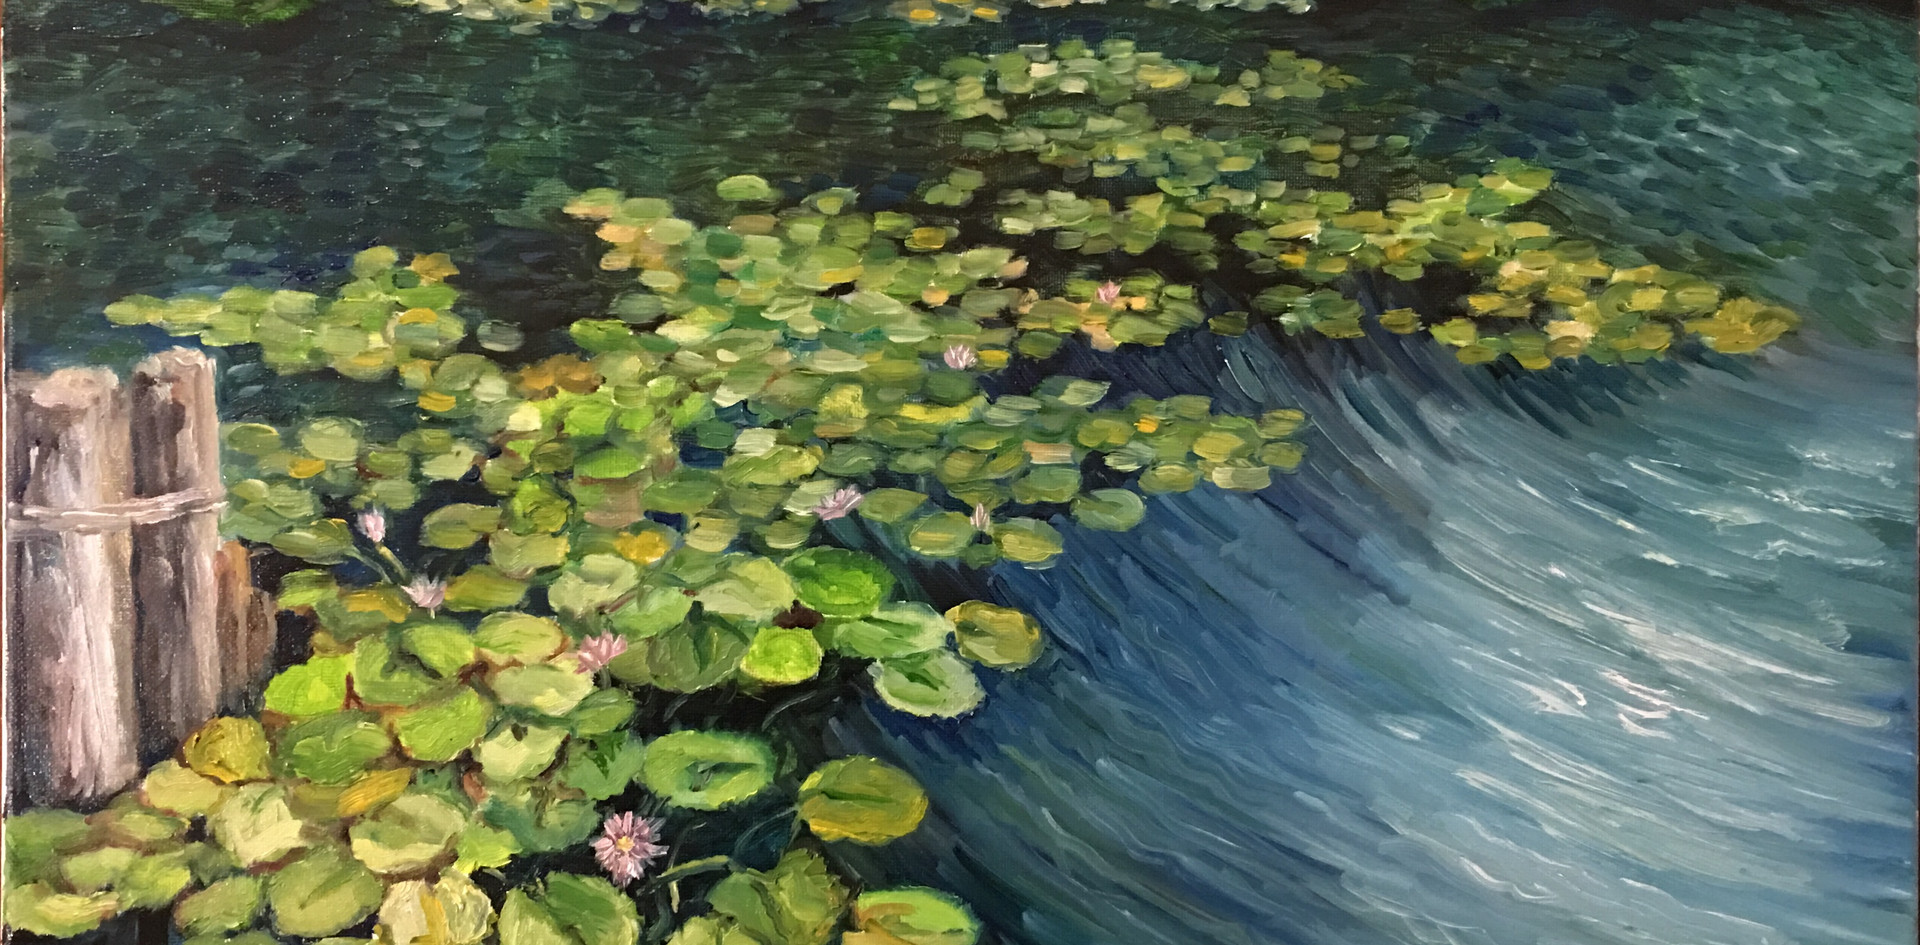 Waterlilies in the Breeze